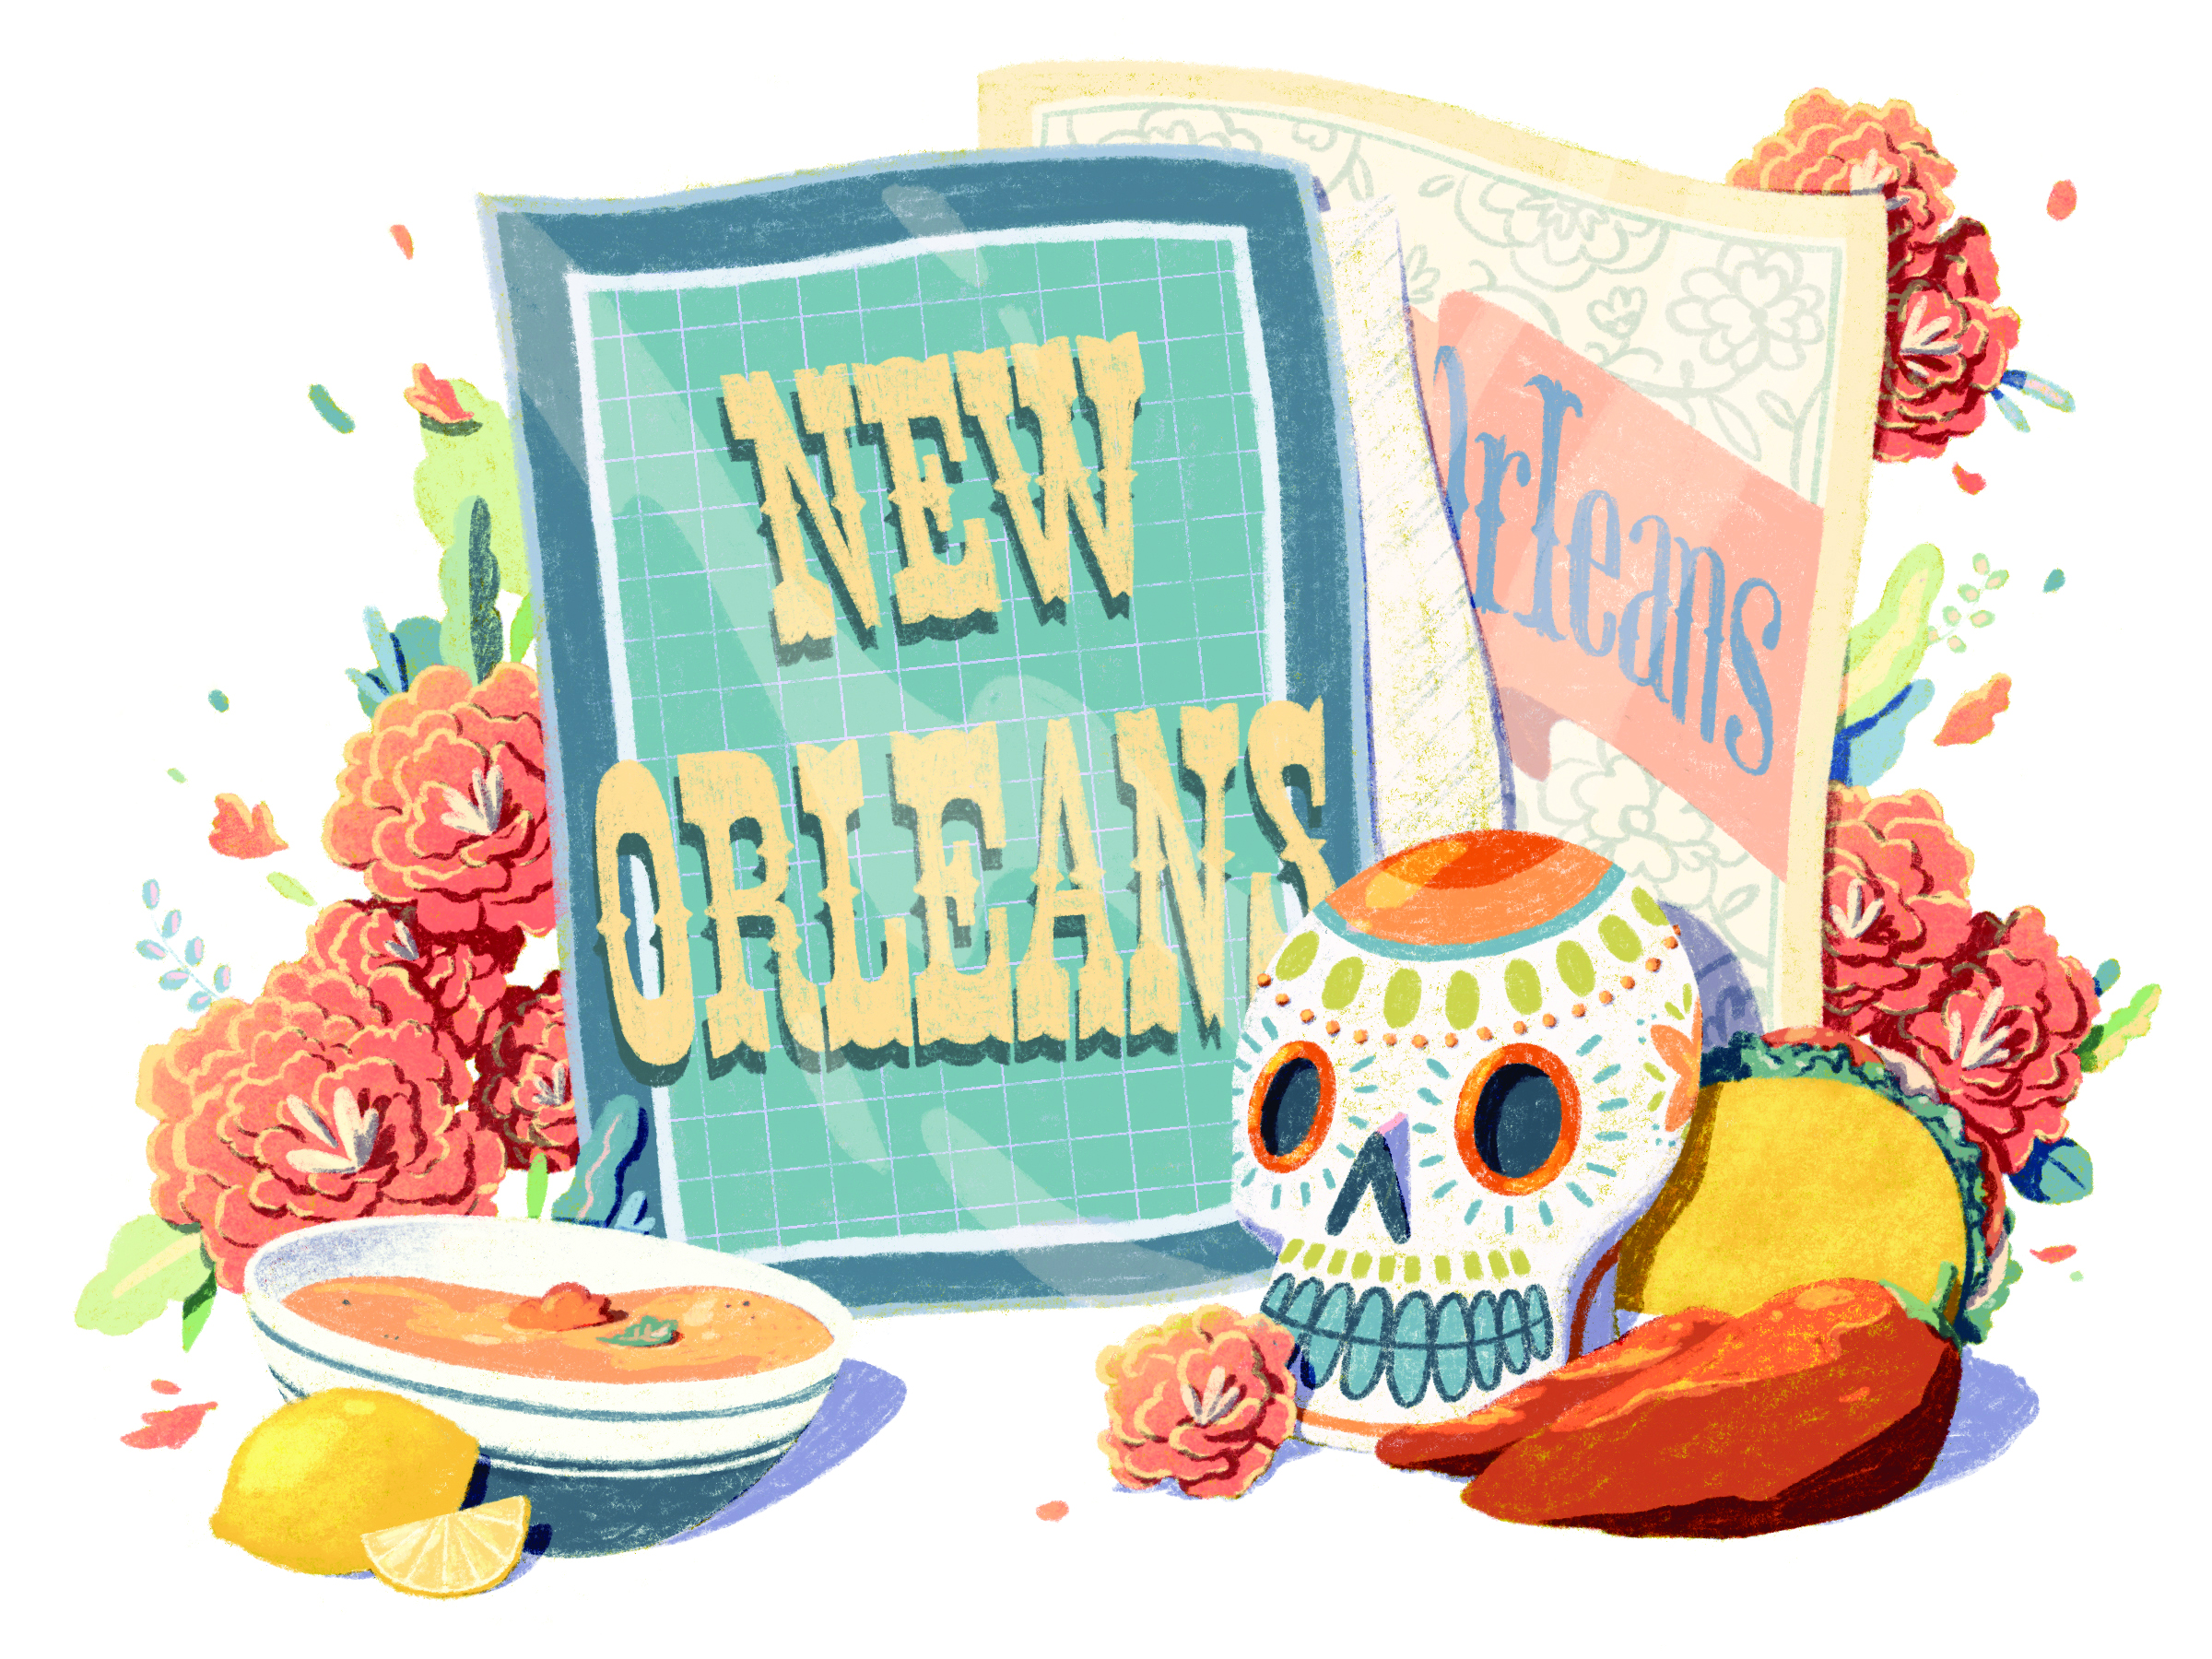 Mexican culture in New Orleans